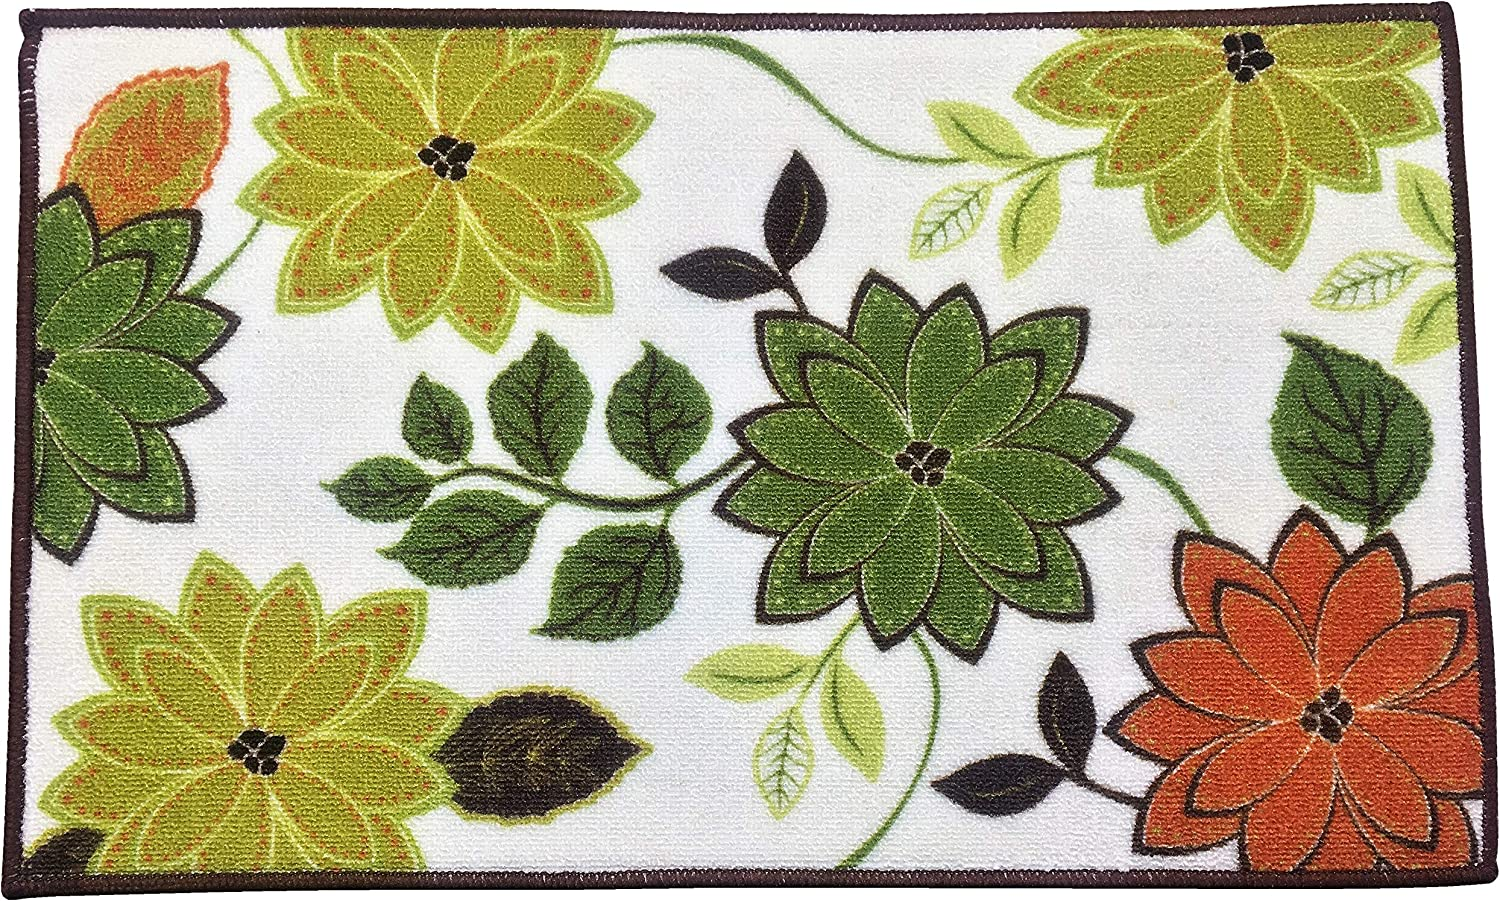 """Harvest Season Rug, Non-Skid Home, Kitchen, Floor Mat, Comfortable Standing and Entrance Rug, 17"""" x 28"""" (Bloom)"""